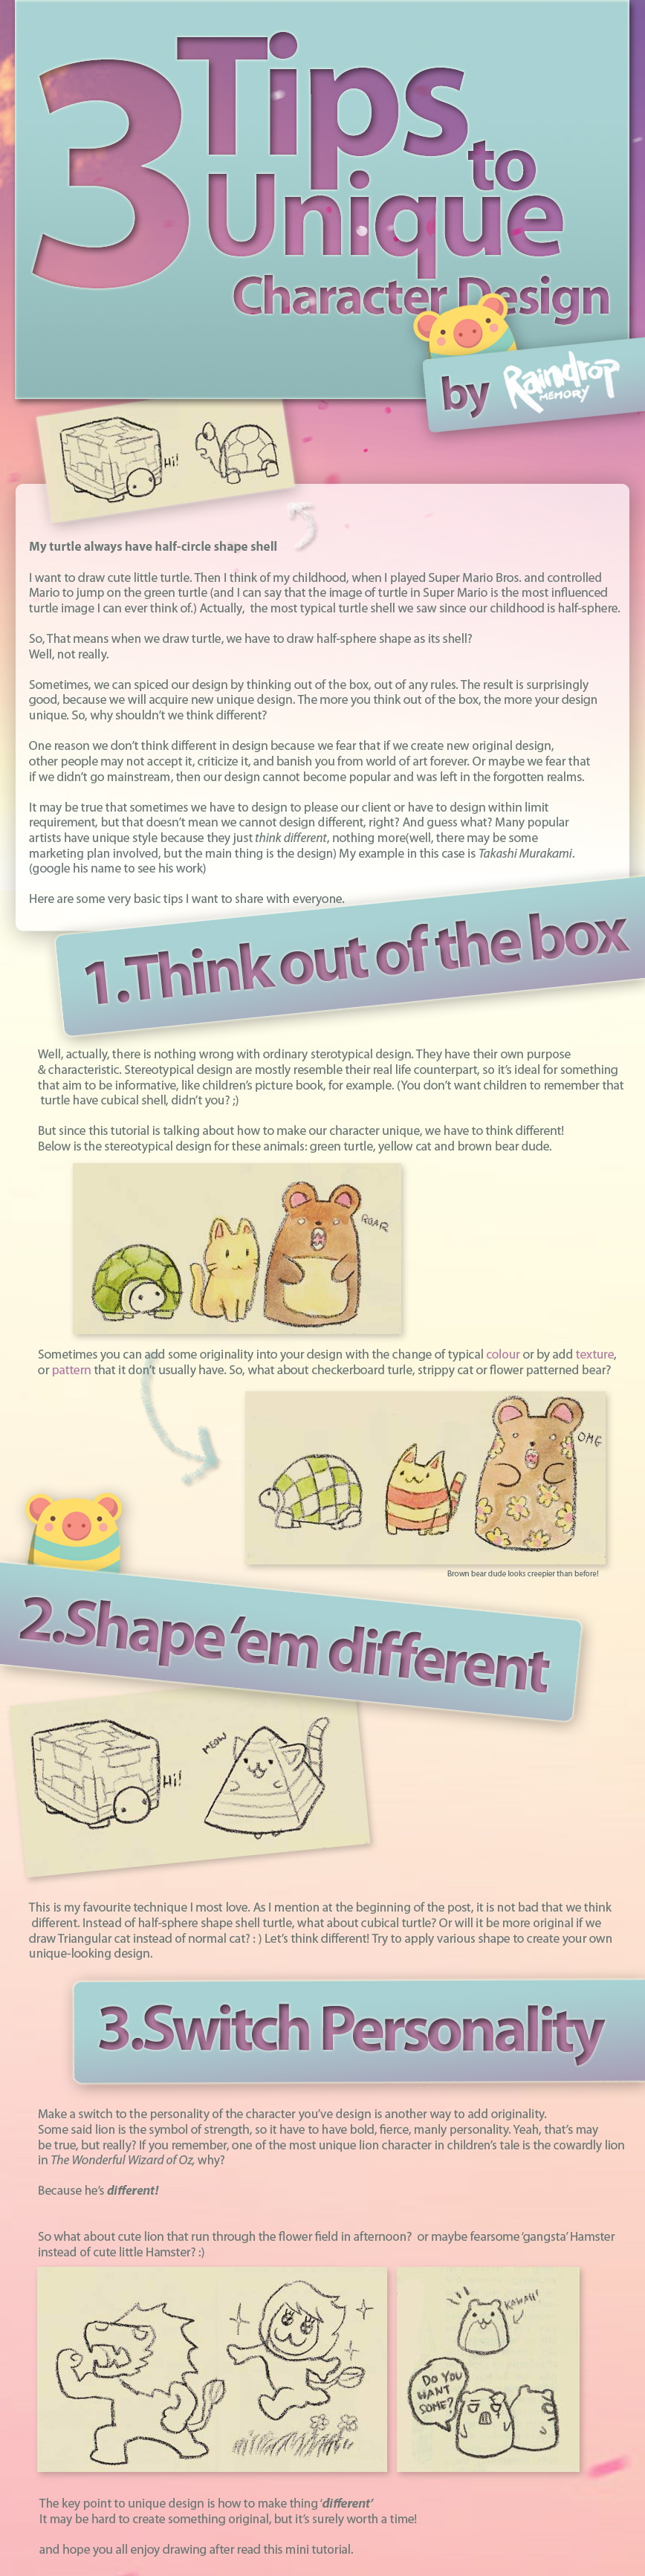 Top 40 Character Design Tips : Tips to character design by raindropmemory on deviantart